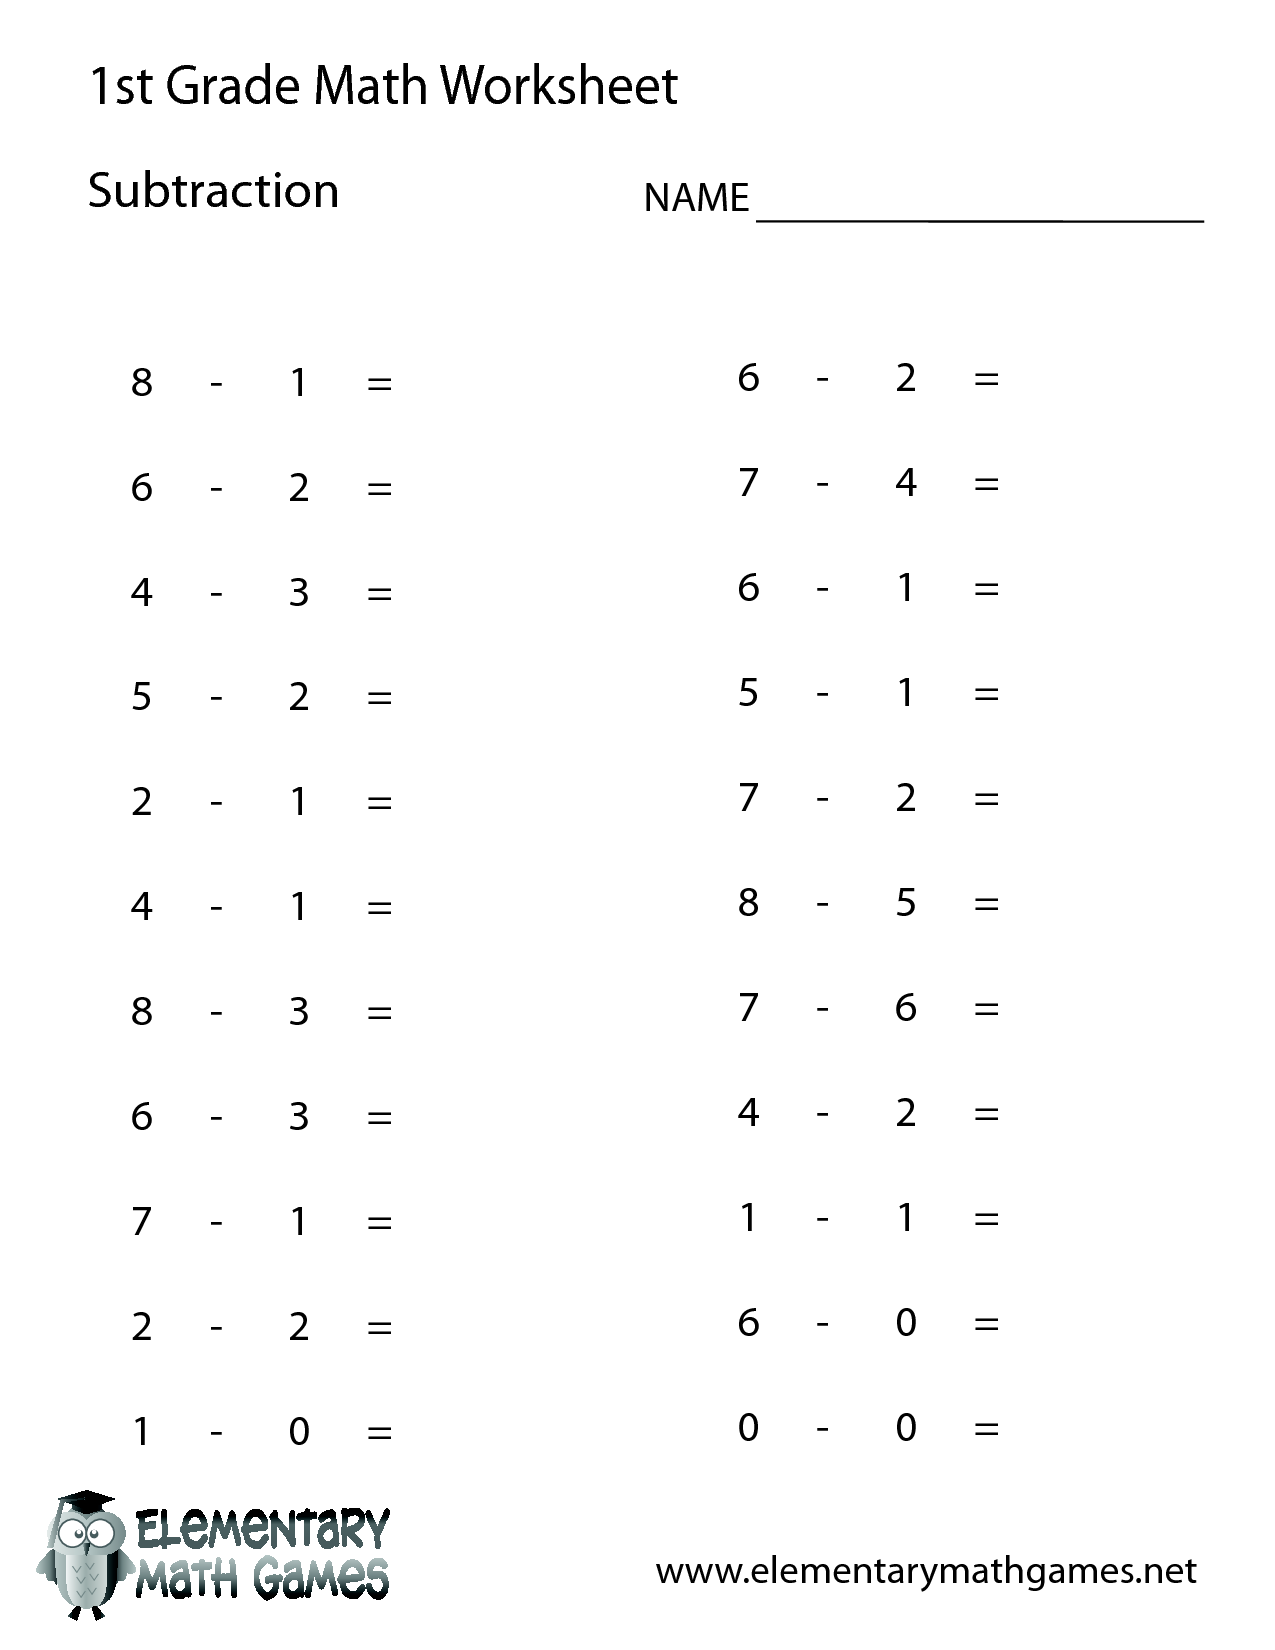 Worksheets Math Addition Worksheets 1st Grade singapore math kindergarten worksheets first grade 1st this can be used as a worksheet or test to see if